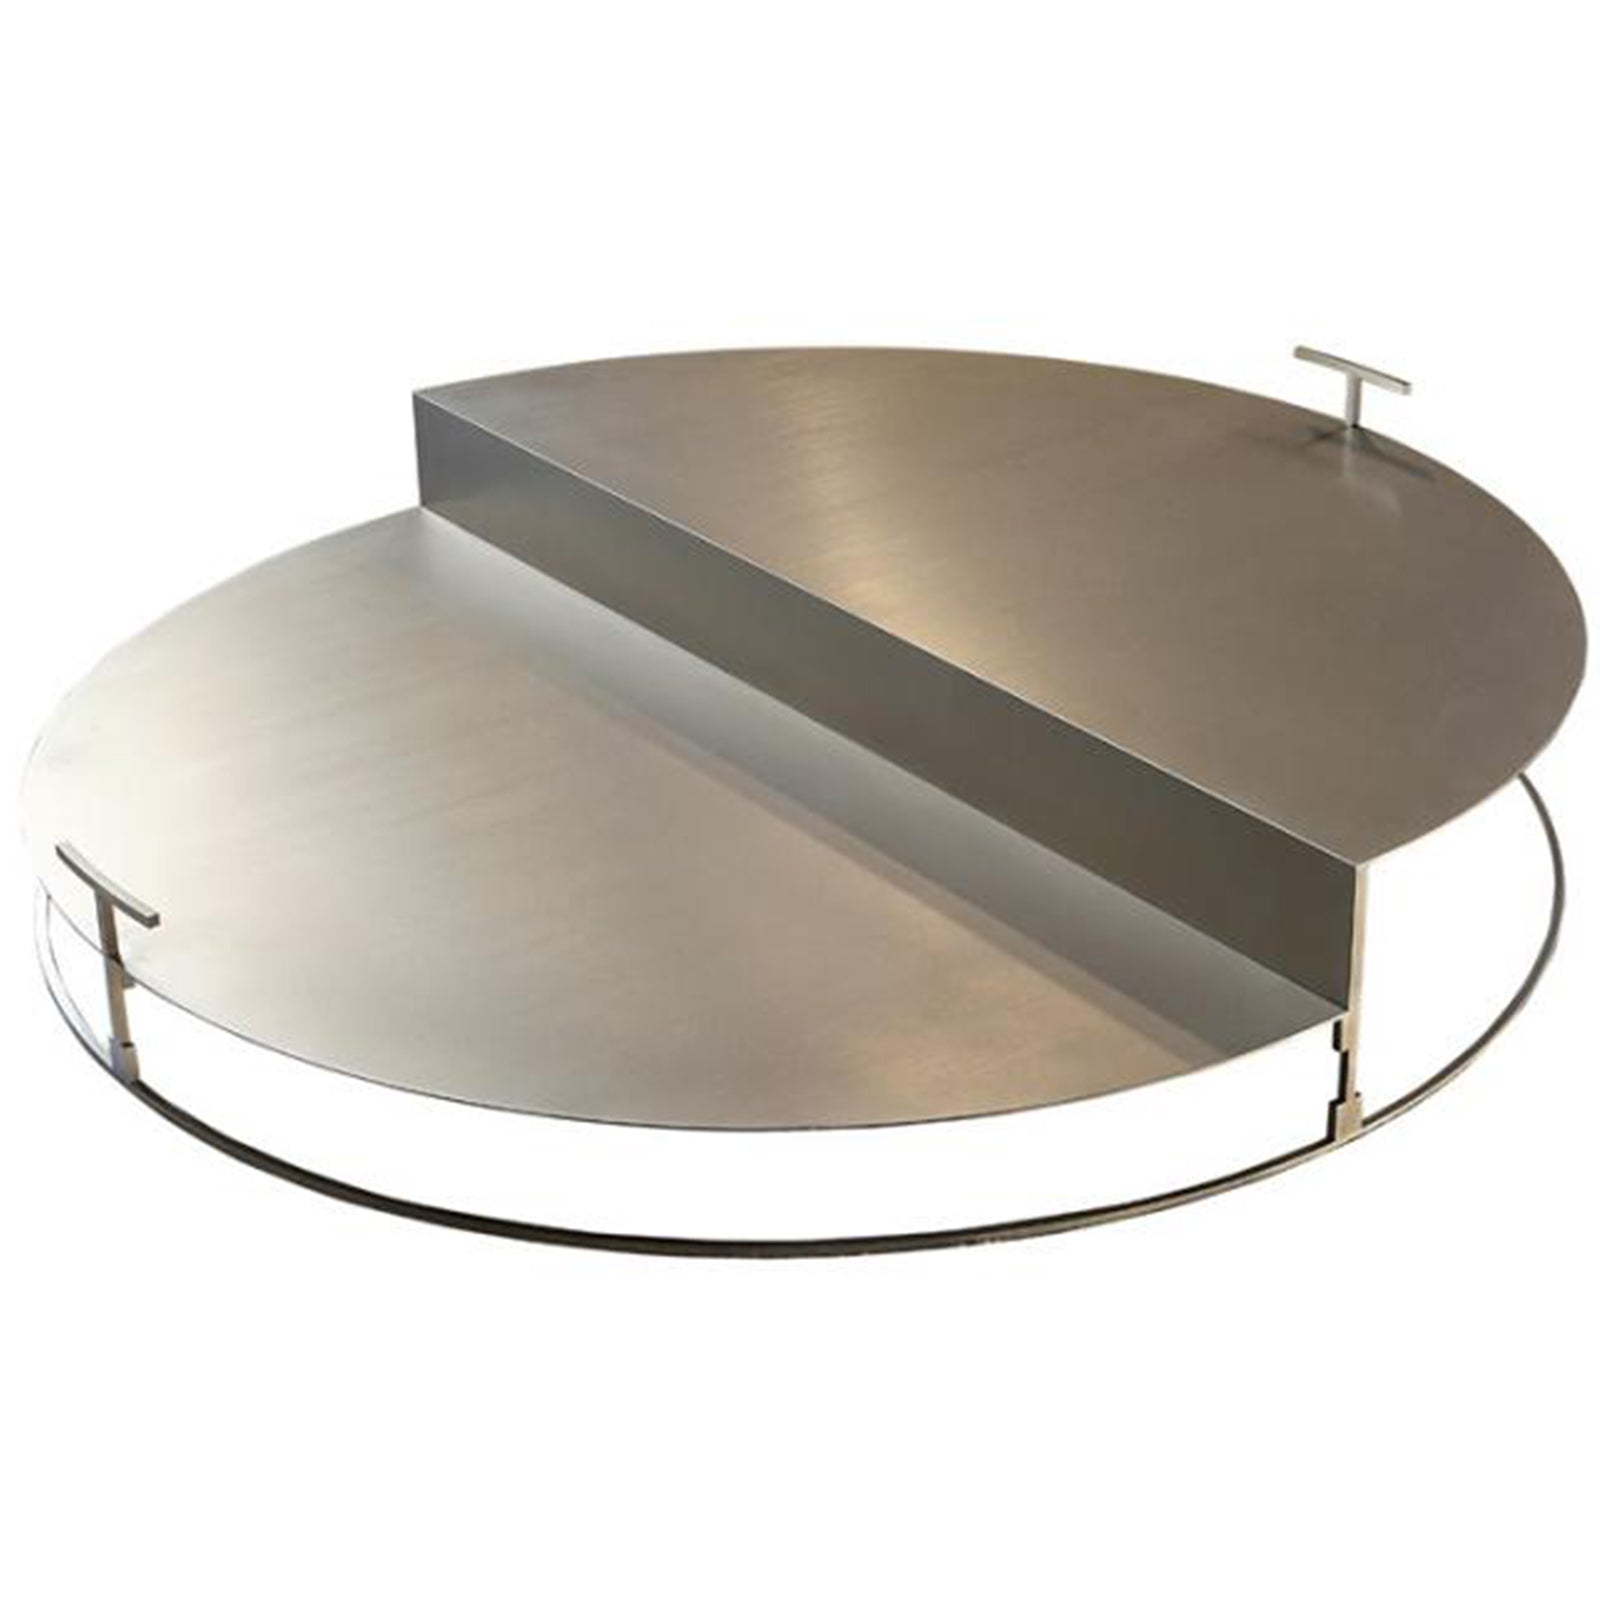 cartesio low table - Casamilano